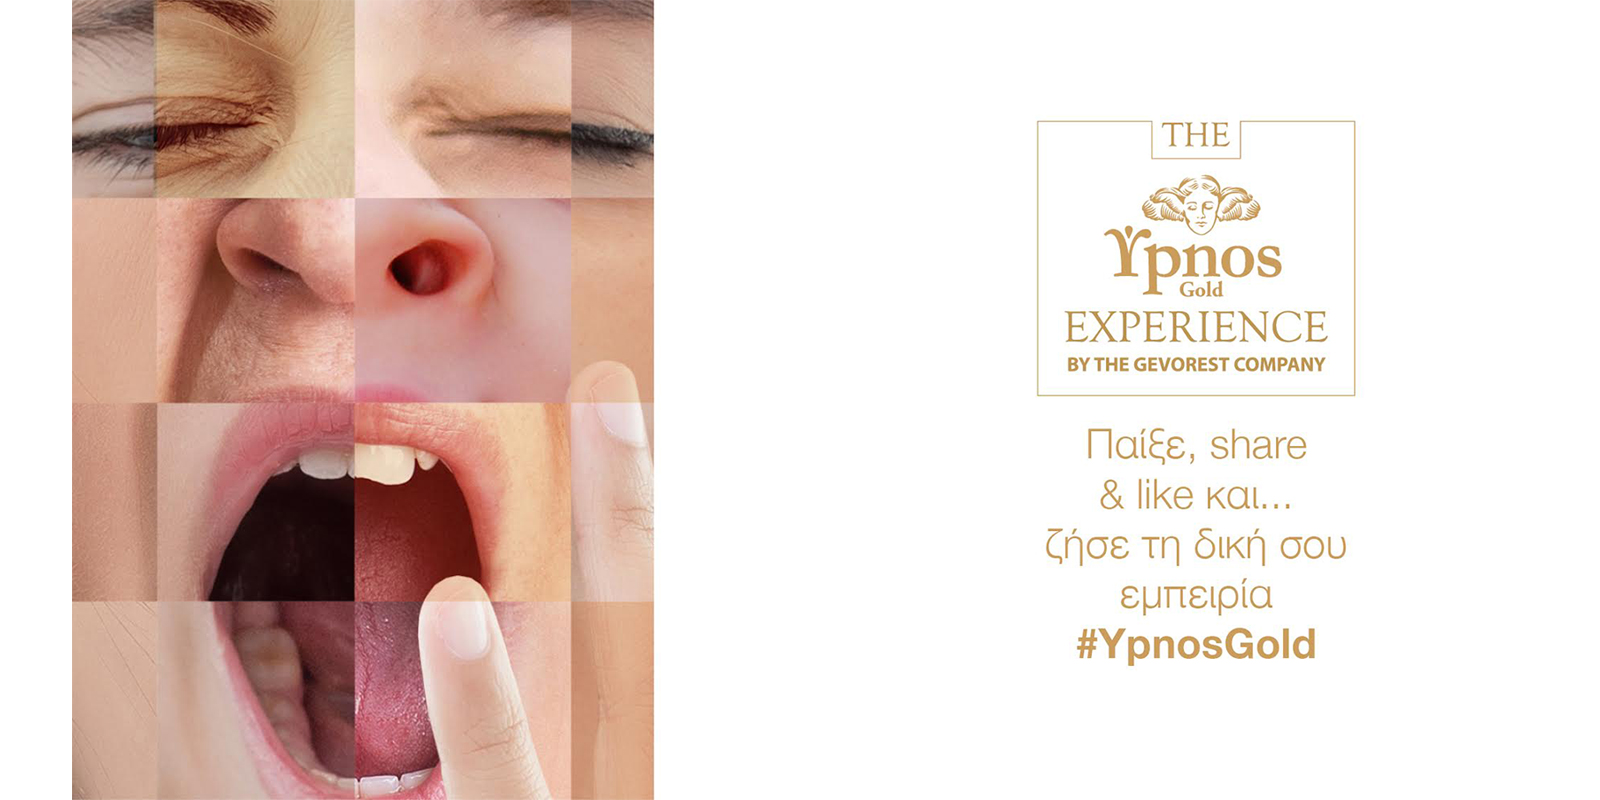 Ypnos Gold Competition